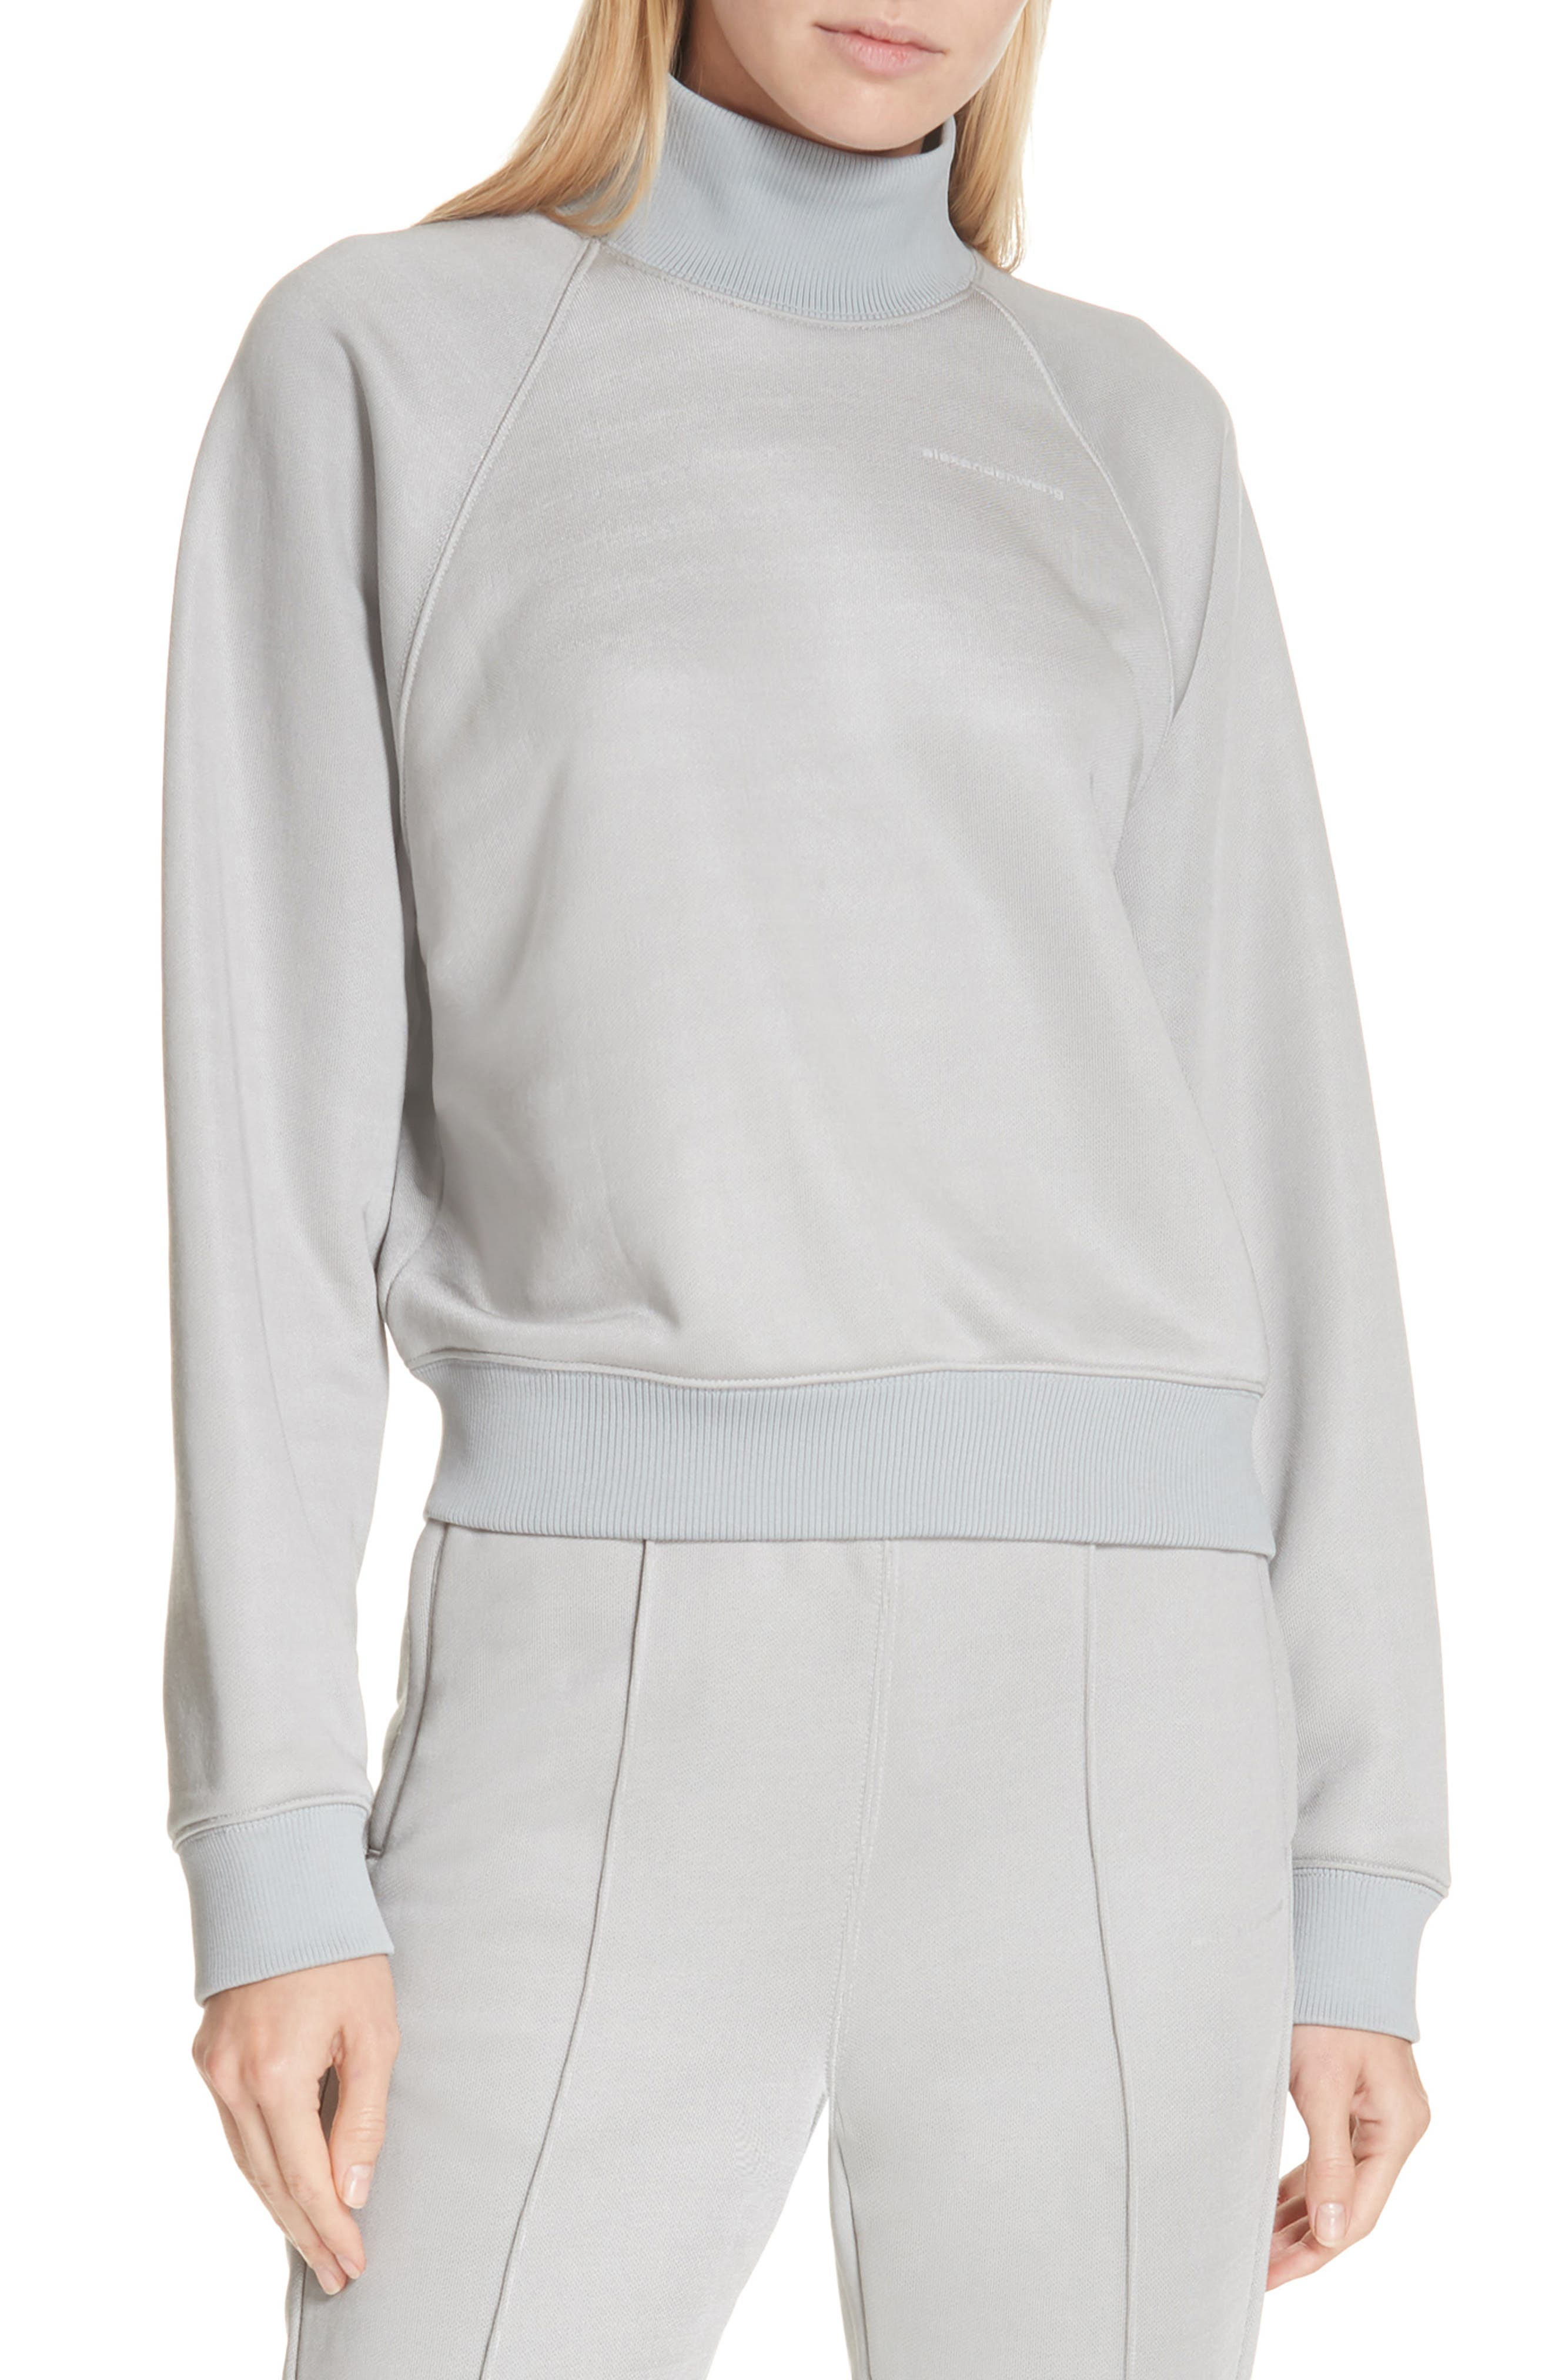 ALEXANDERWANG.T French Terry Turtleneck Sweatshirt in Silver